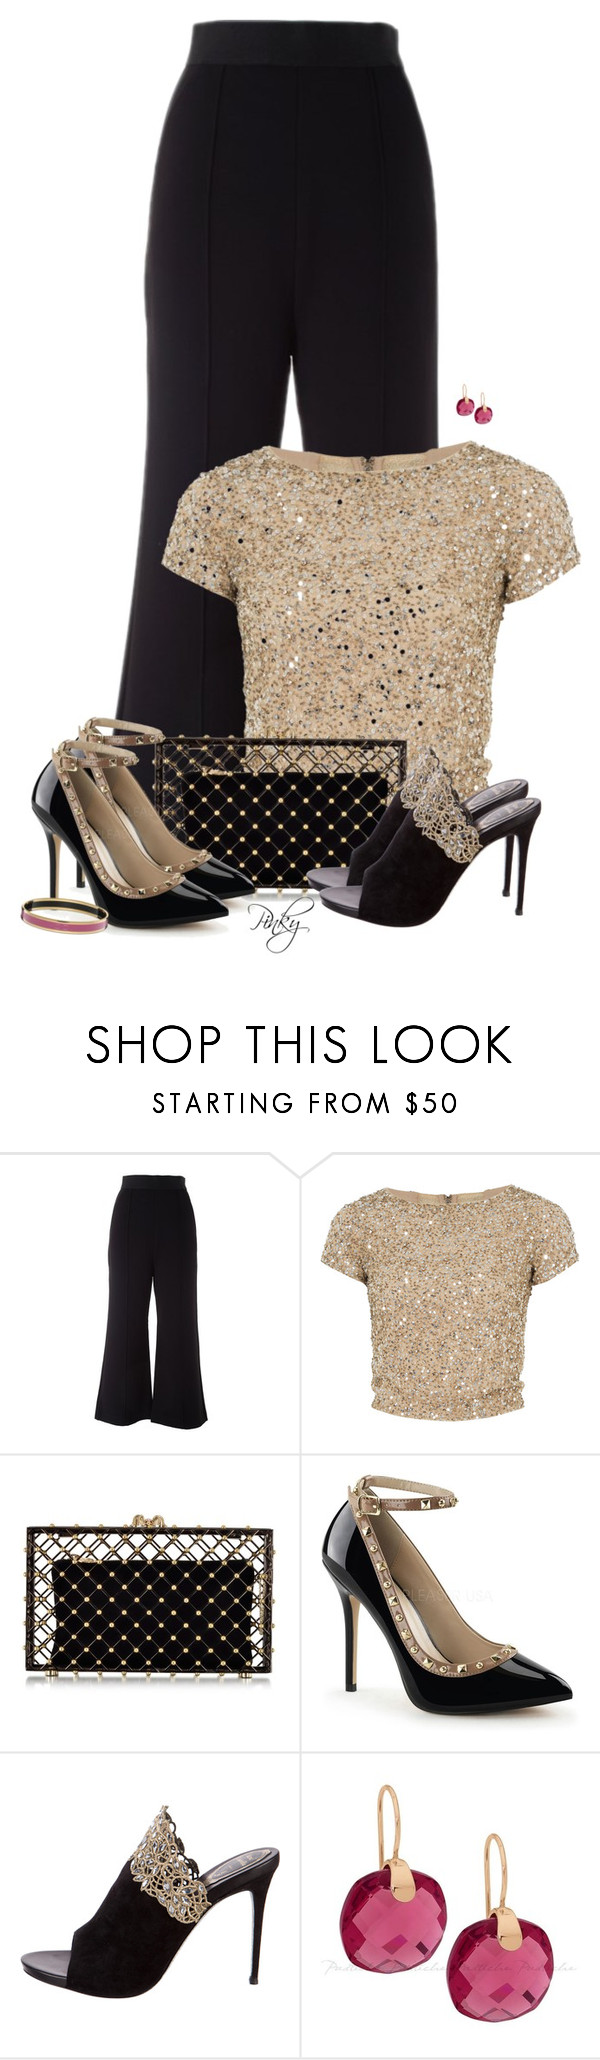 """""""Can't Decide: Which Shoes??"""" by pinkystyle ❤ liked on Polyvore featuring Alice + Olivia, Charlotte Olympia and René Caovilla"""